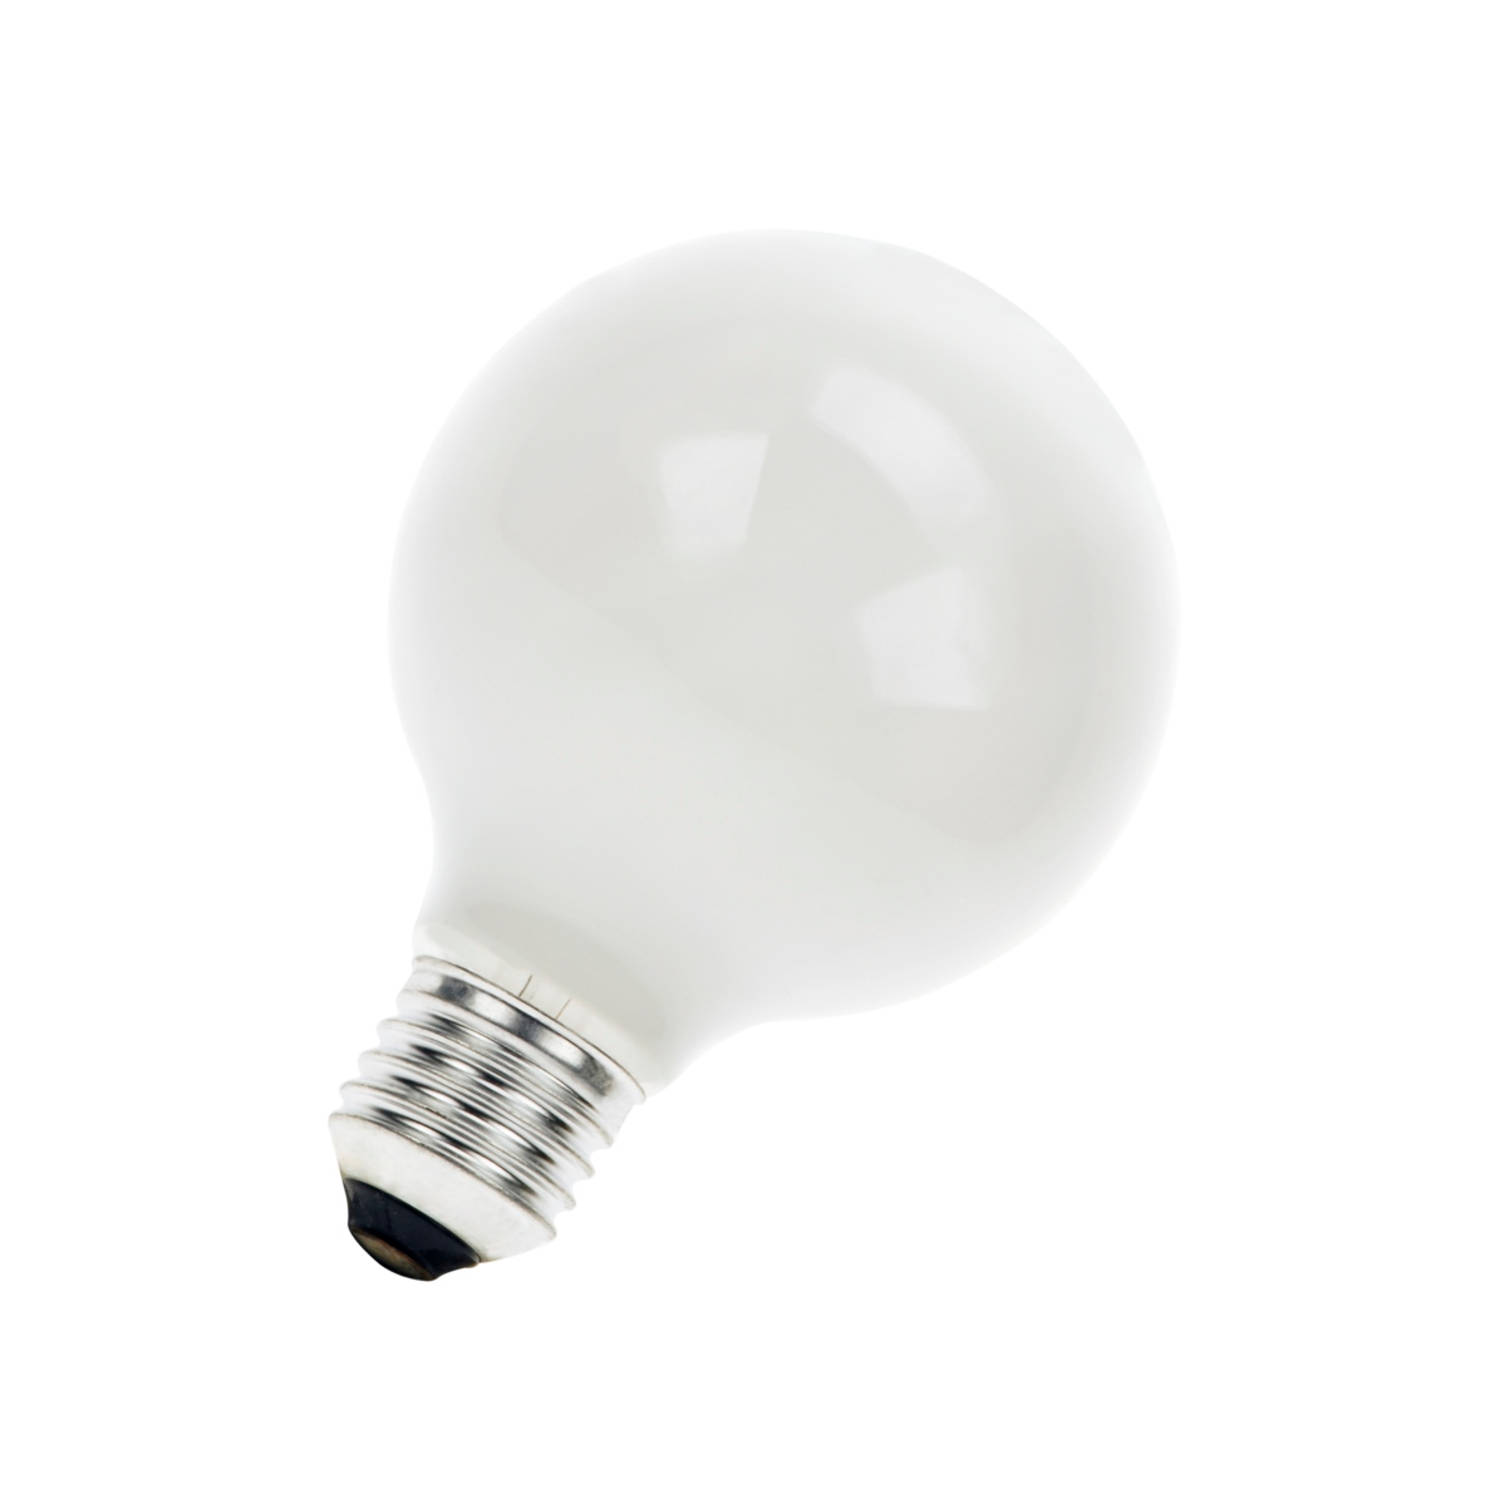 Afbeelding van Bailey Filament LED G80 E27 8W 2700K Opaal 980lm